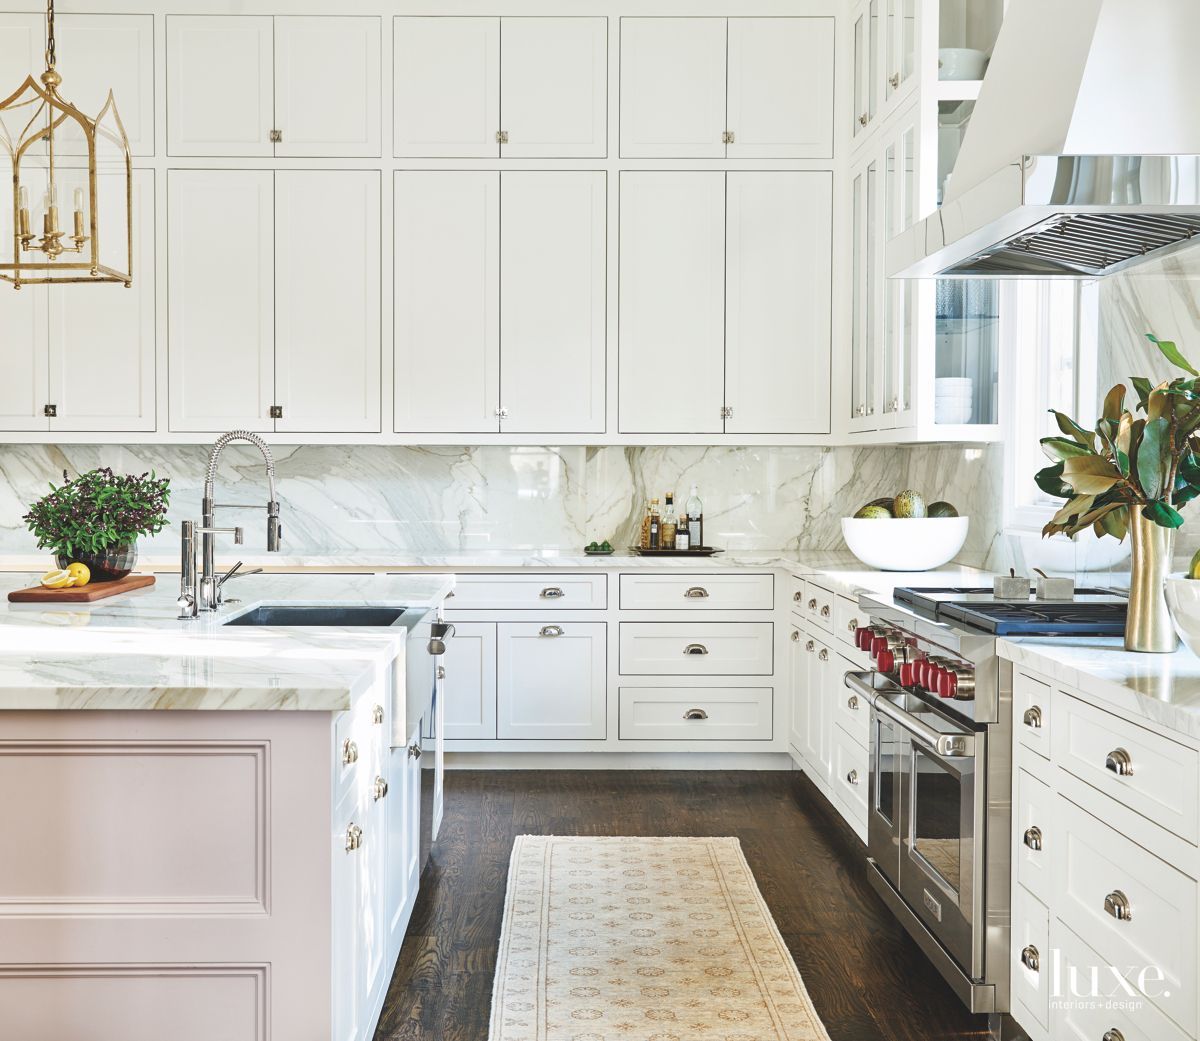 White Kitchen Cabinetry with Lantern Lighting and Runner Rug